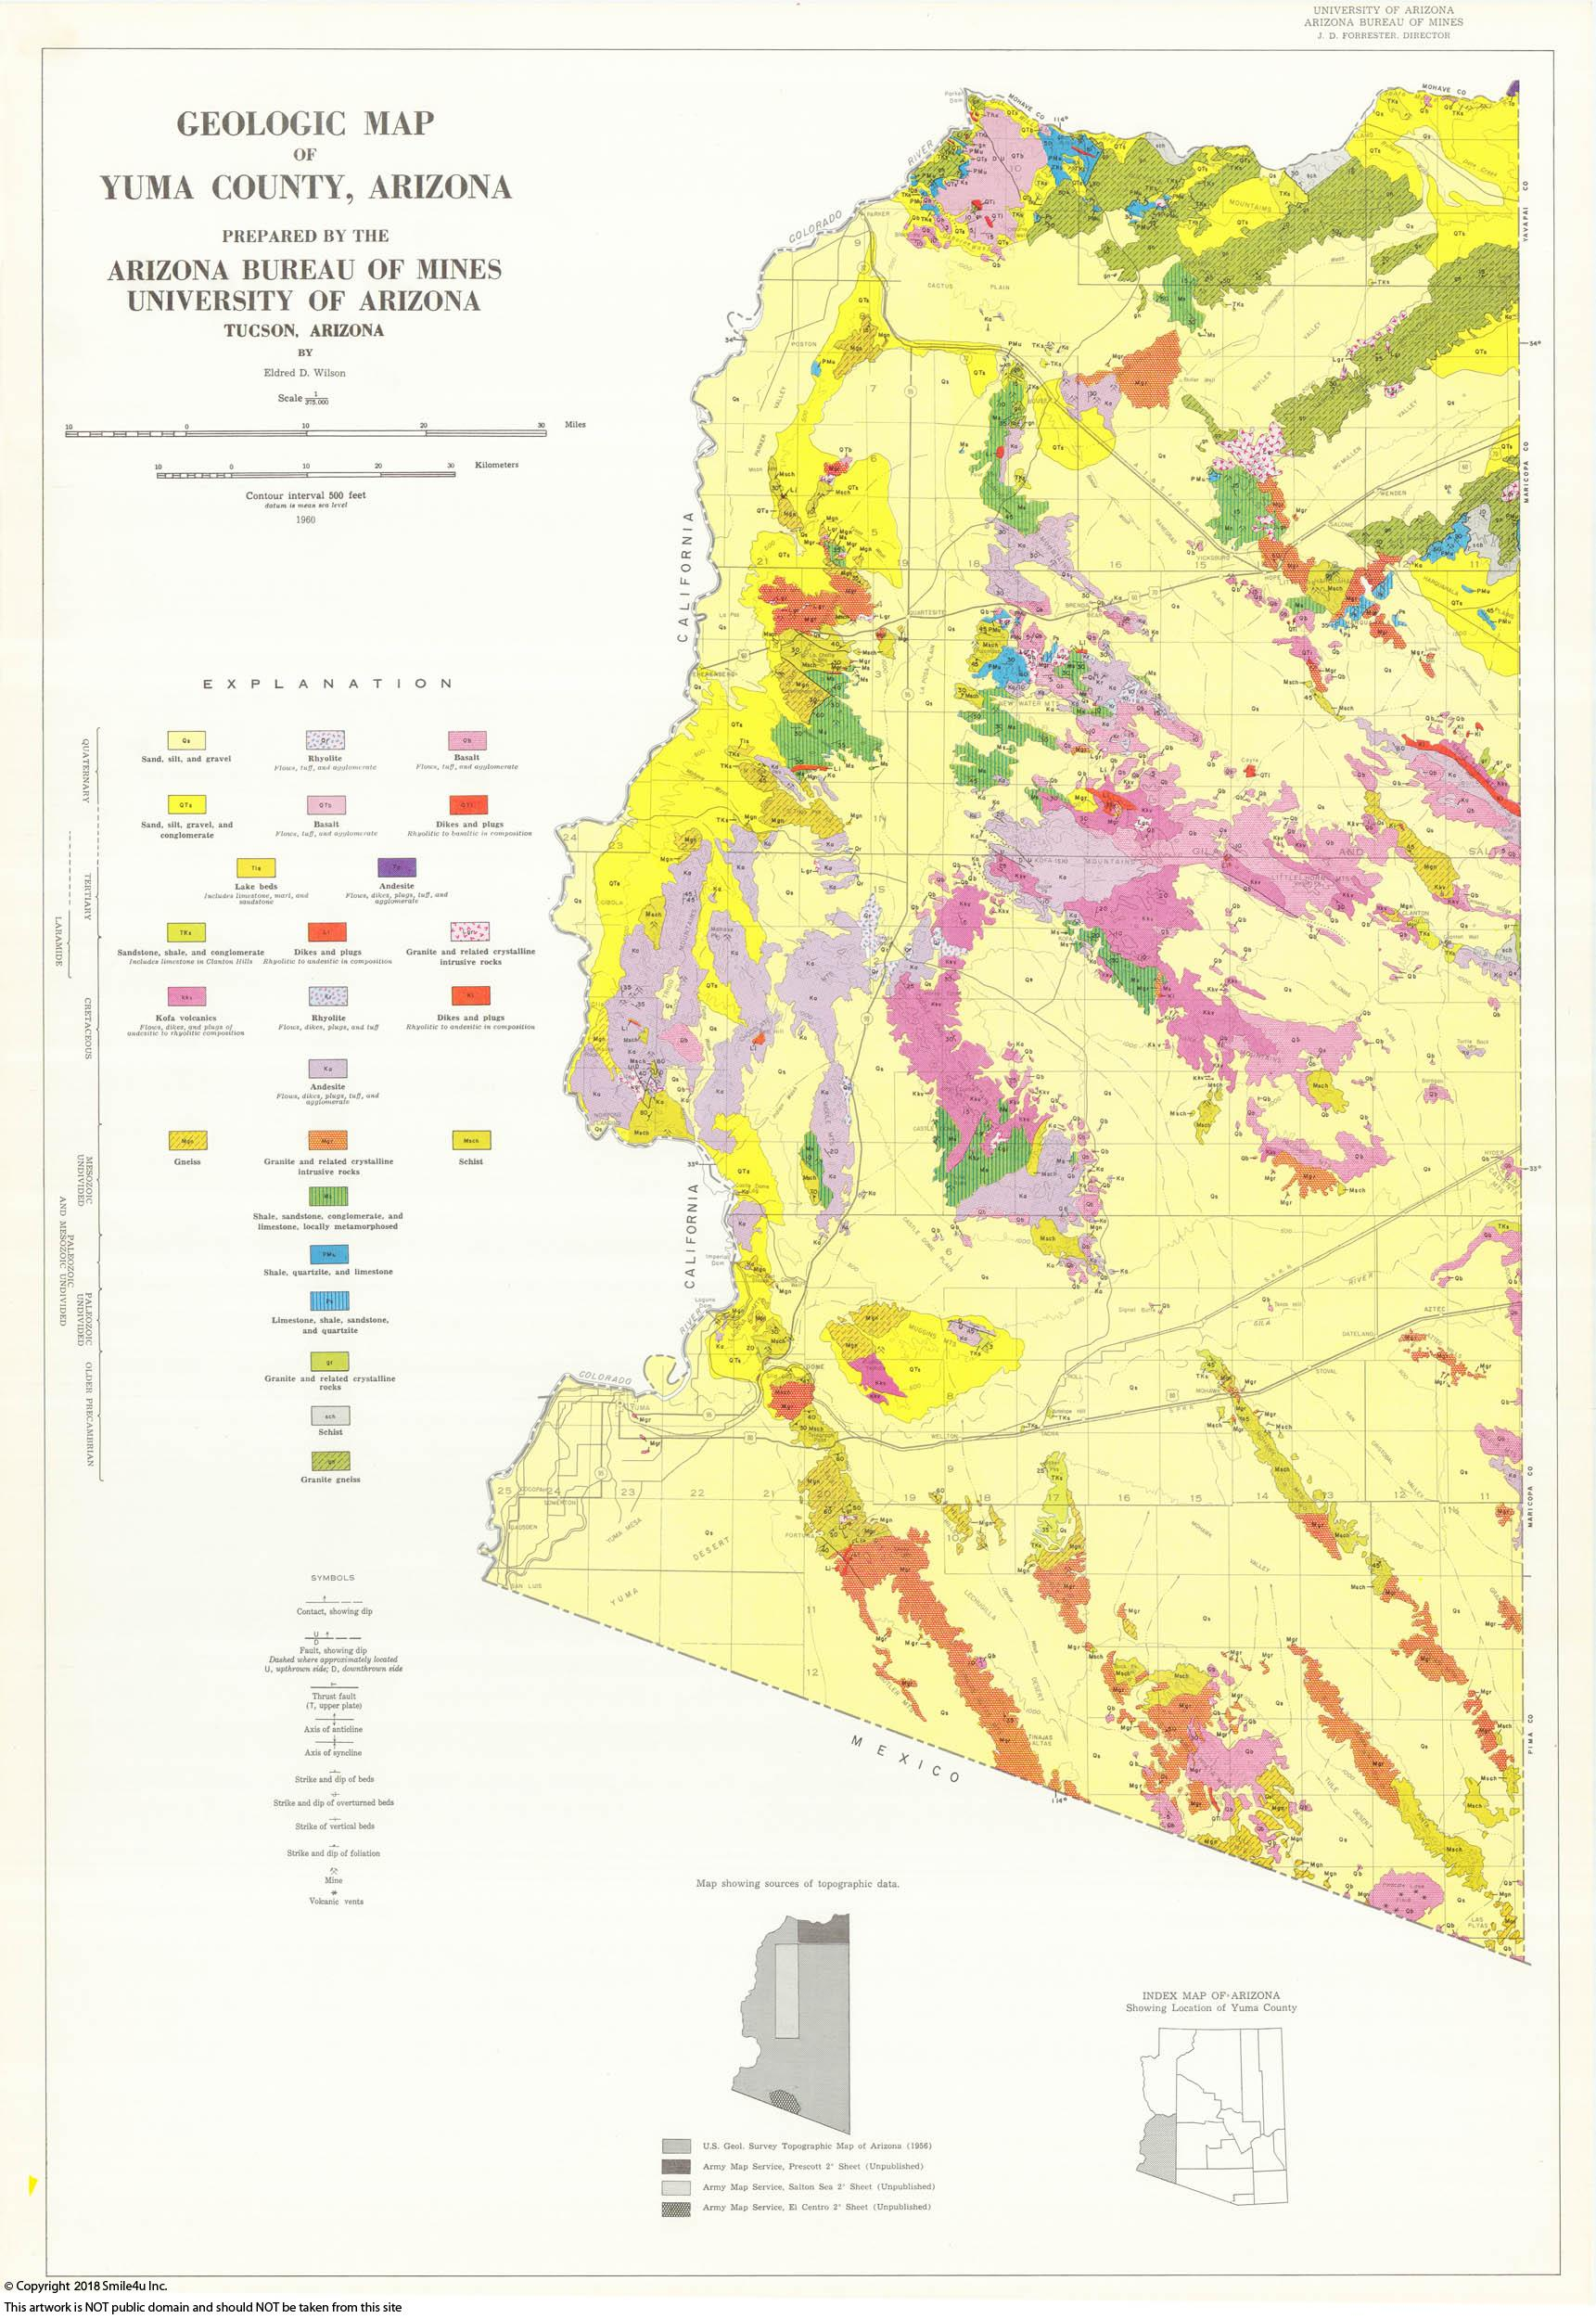 874271_watermarked_yumacounty_1960_geologicmap.jpg